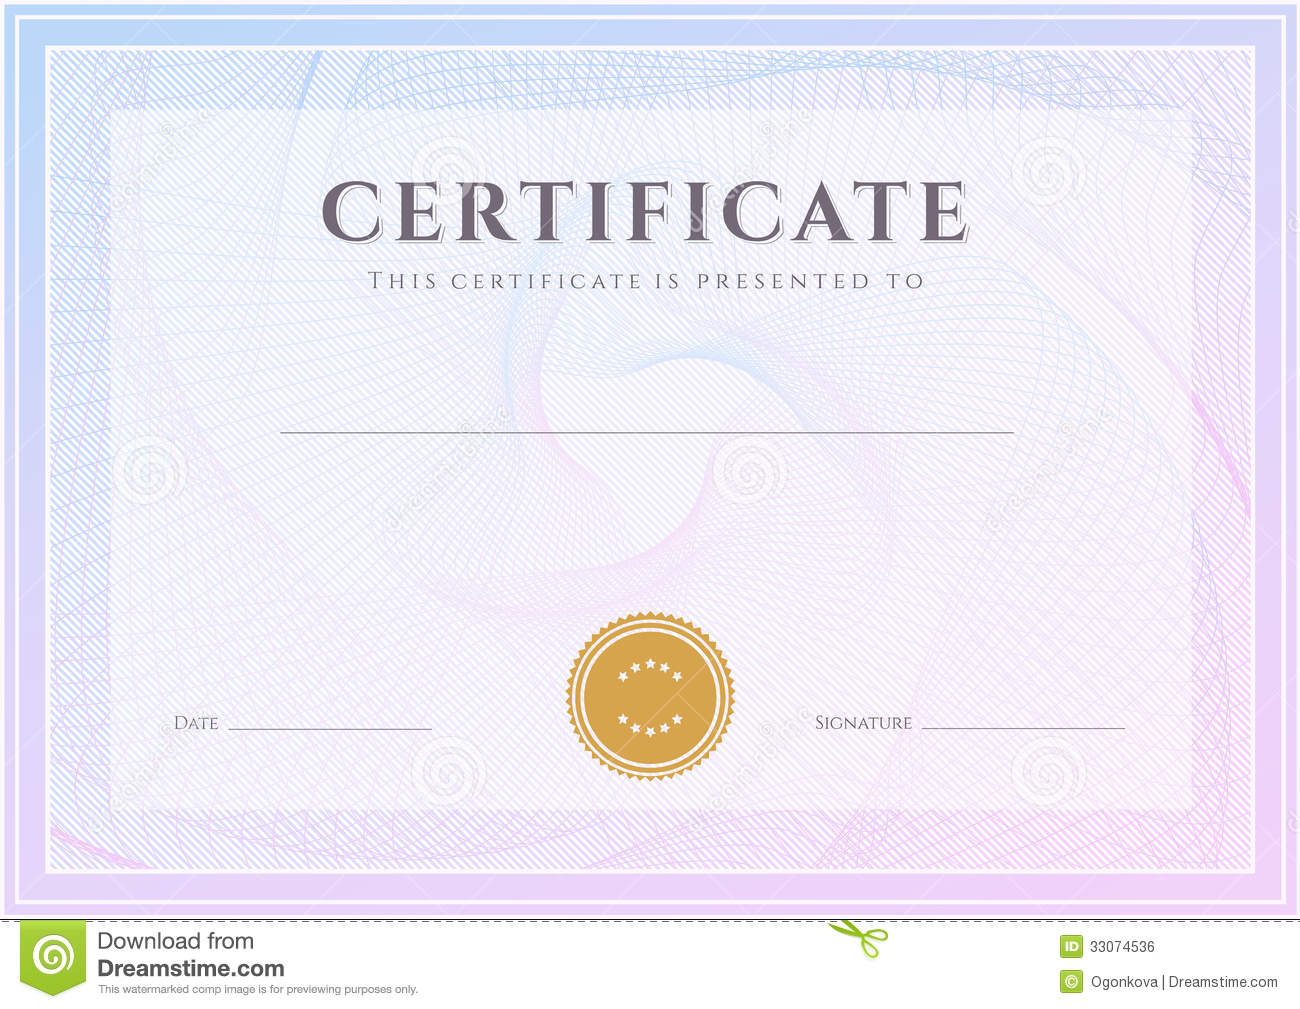 Certificate diploma template award pattern stock vector for Free online certificate templates